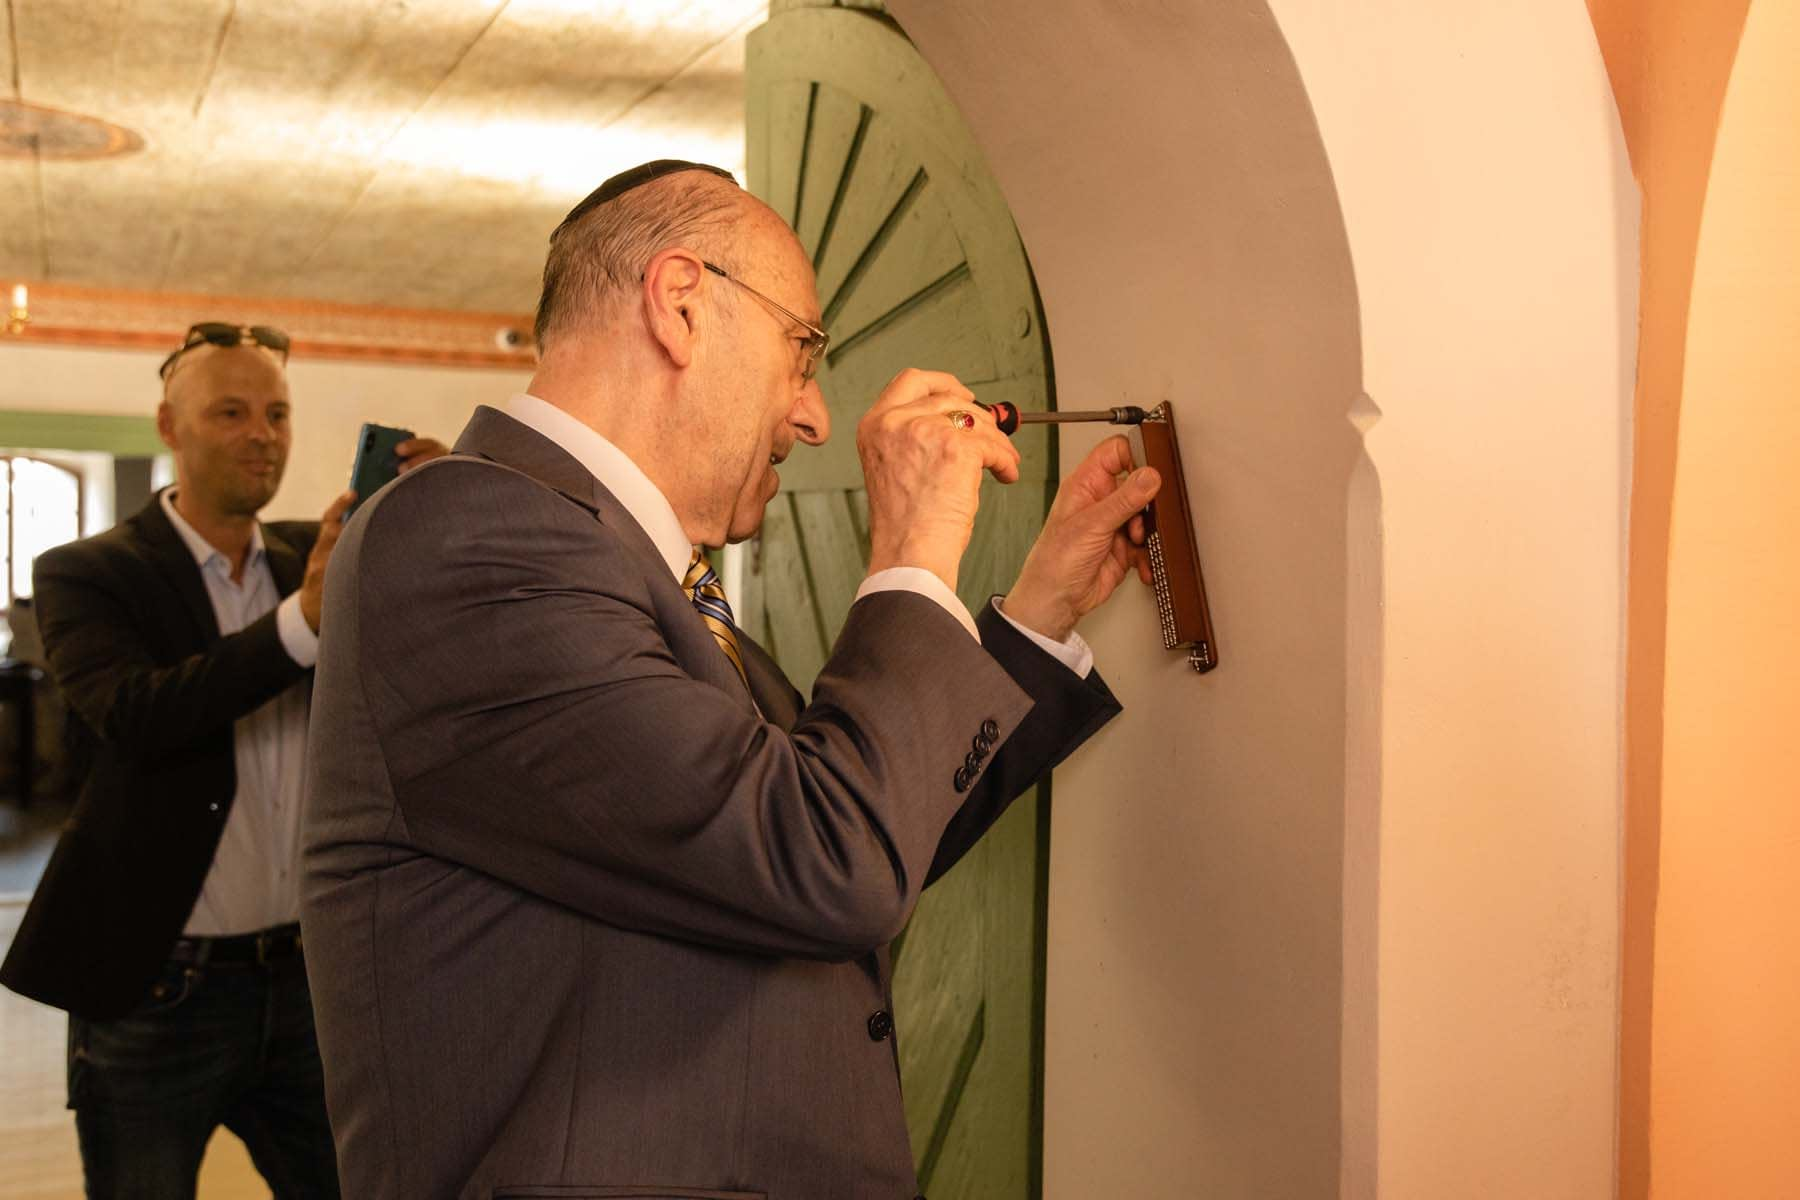 Mr. Emil Fish, together with Mr. Paul Packer and representatives of Jewish religious communities in Slovakia, attached a mezuzah to the doorpost of the entrance door